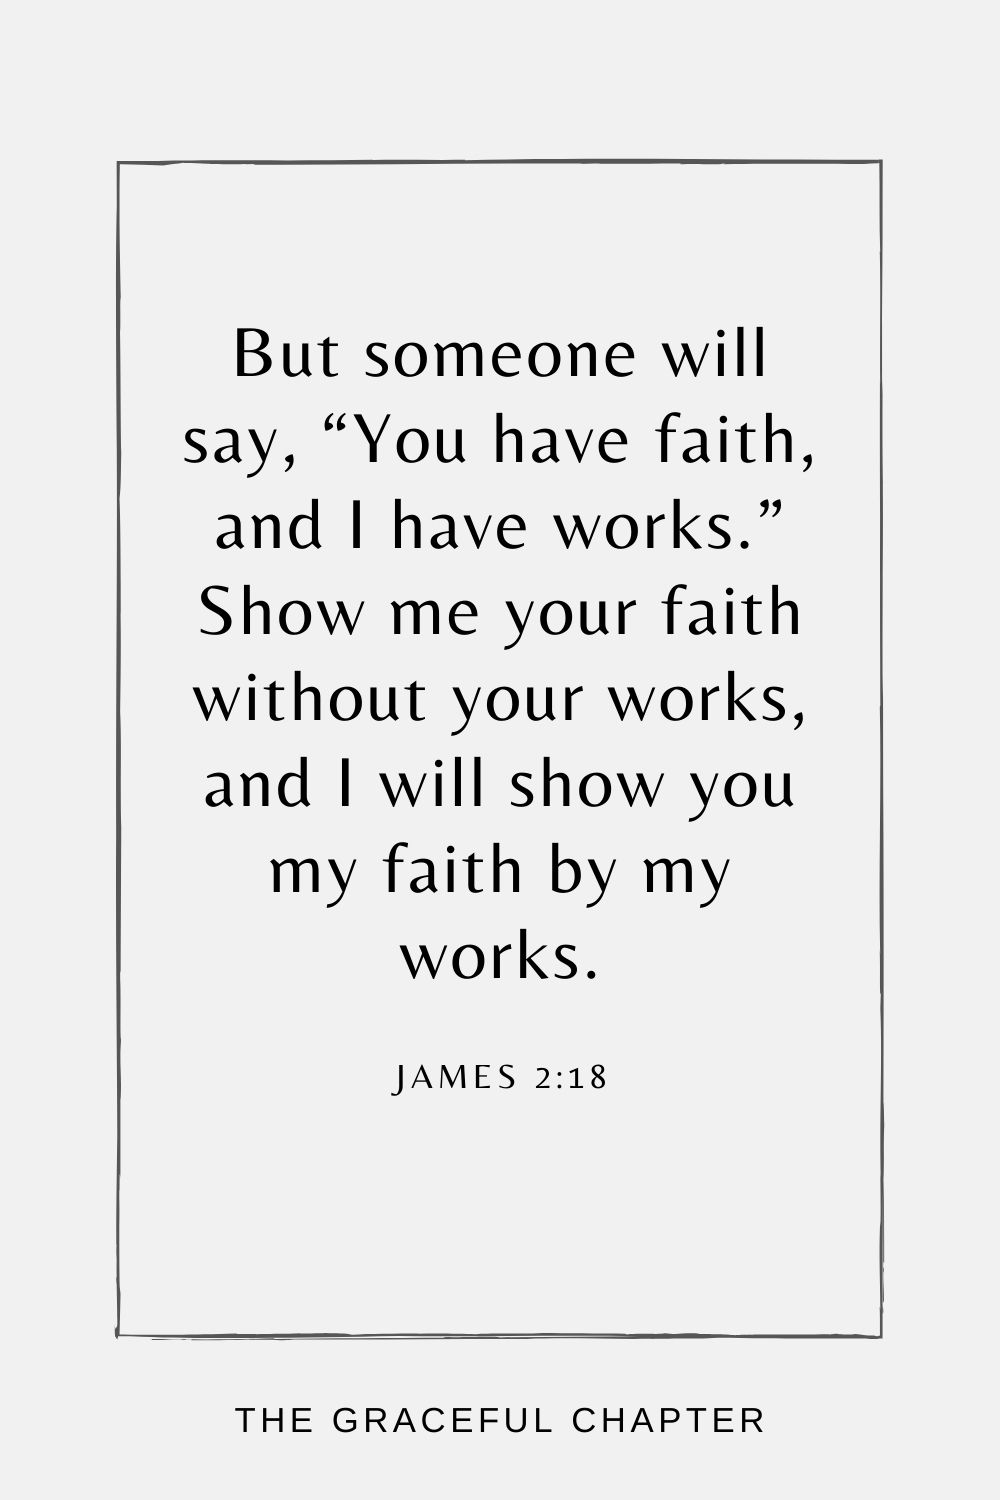 """But someone will say, """"You have faith, and I have works."""" Show me your faith without your works, and I will show you my faith by my works. James 2:18"""